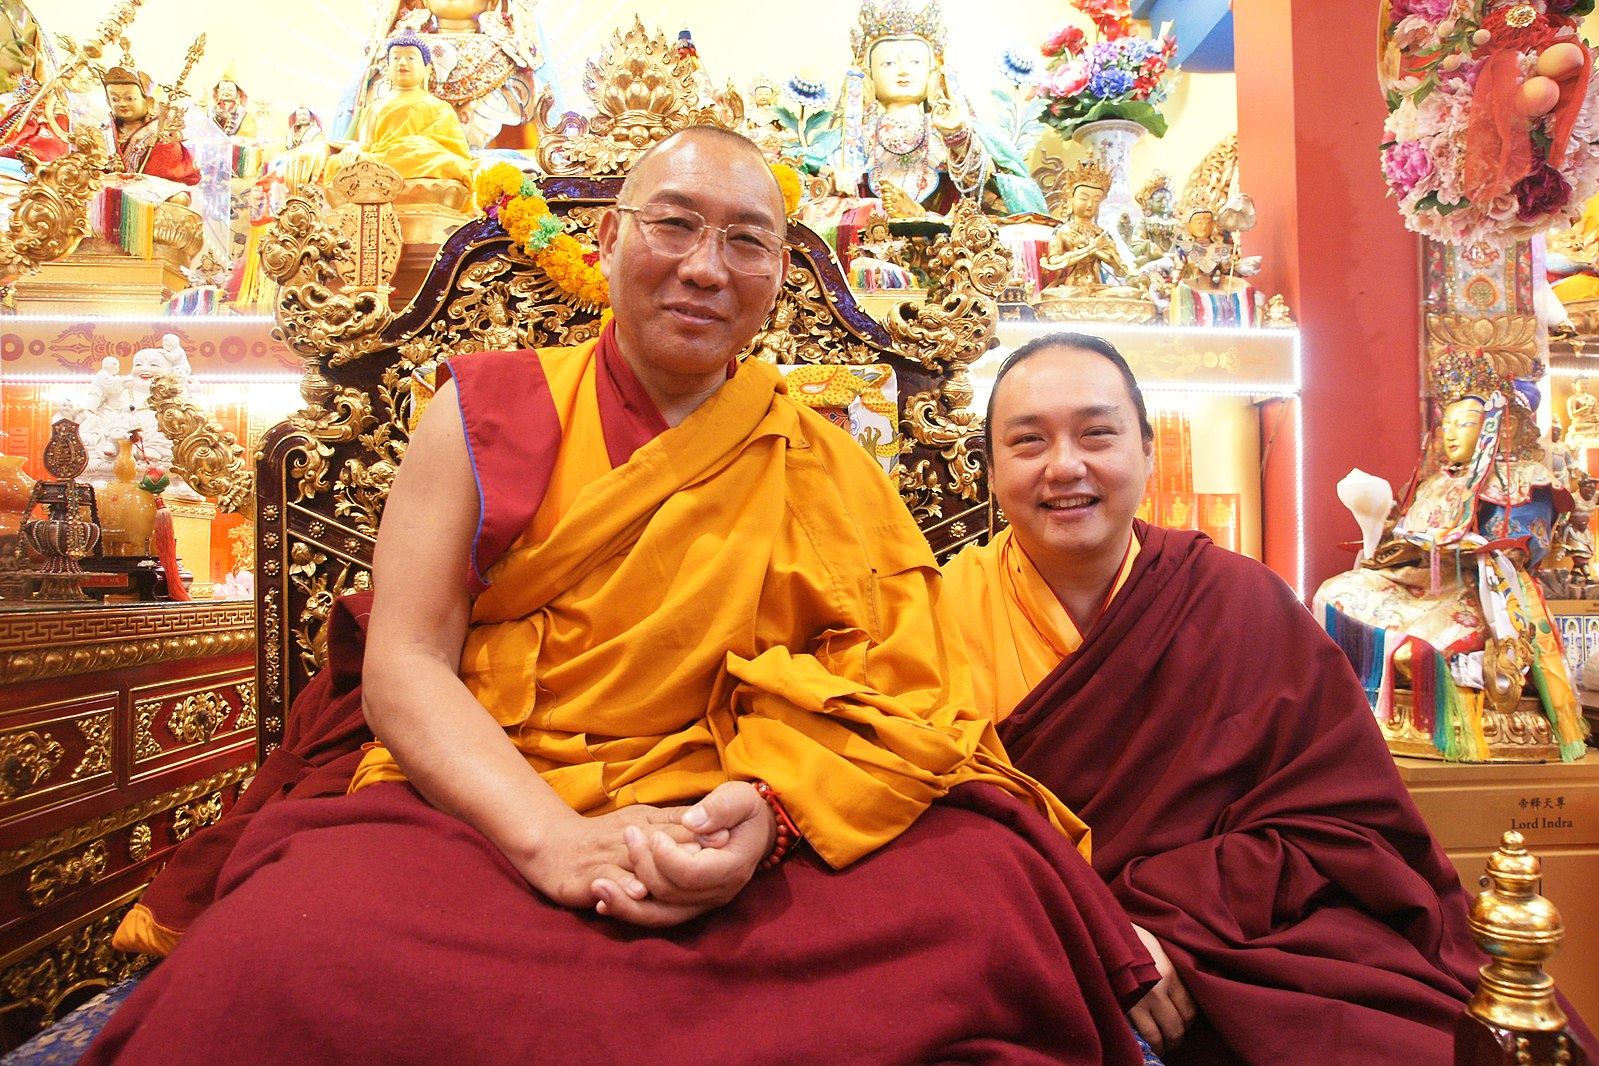 https://commons.wikimedia.org/wiki/File:With_Dagri_Rinpoche.jpg